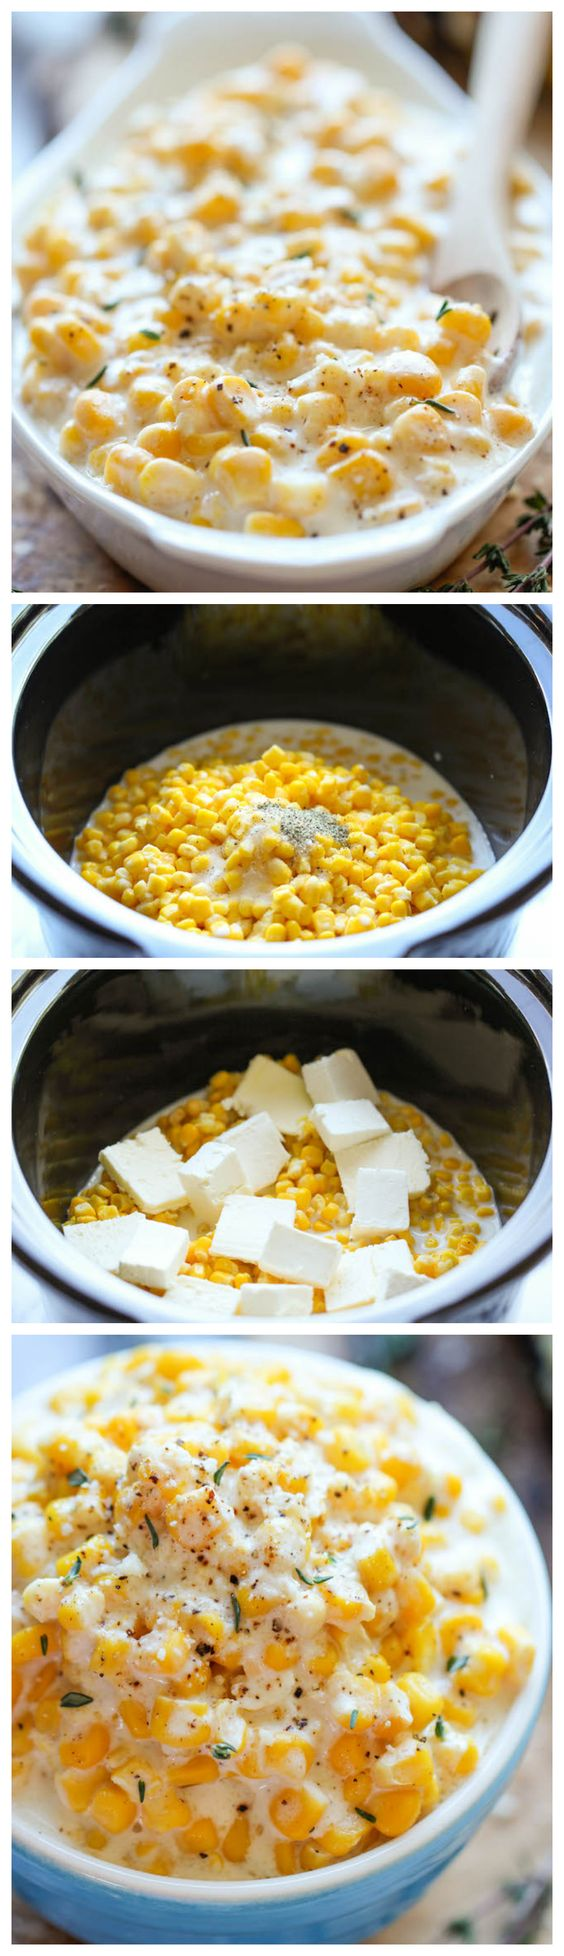 how to make creamed corn from fresh corn